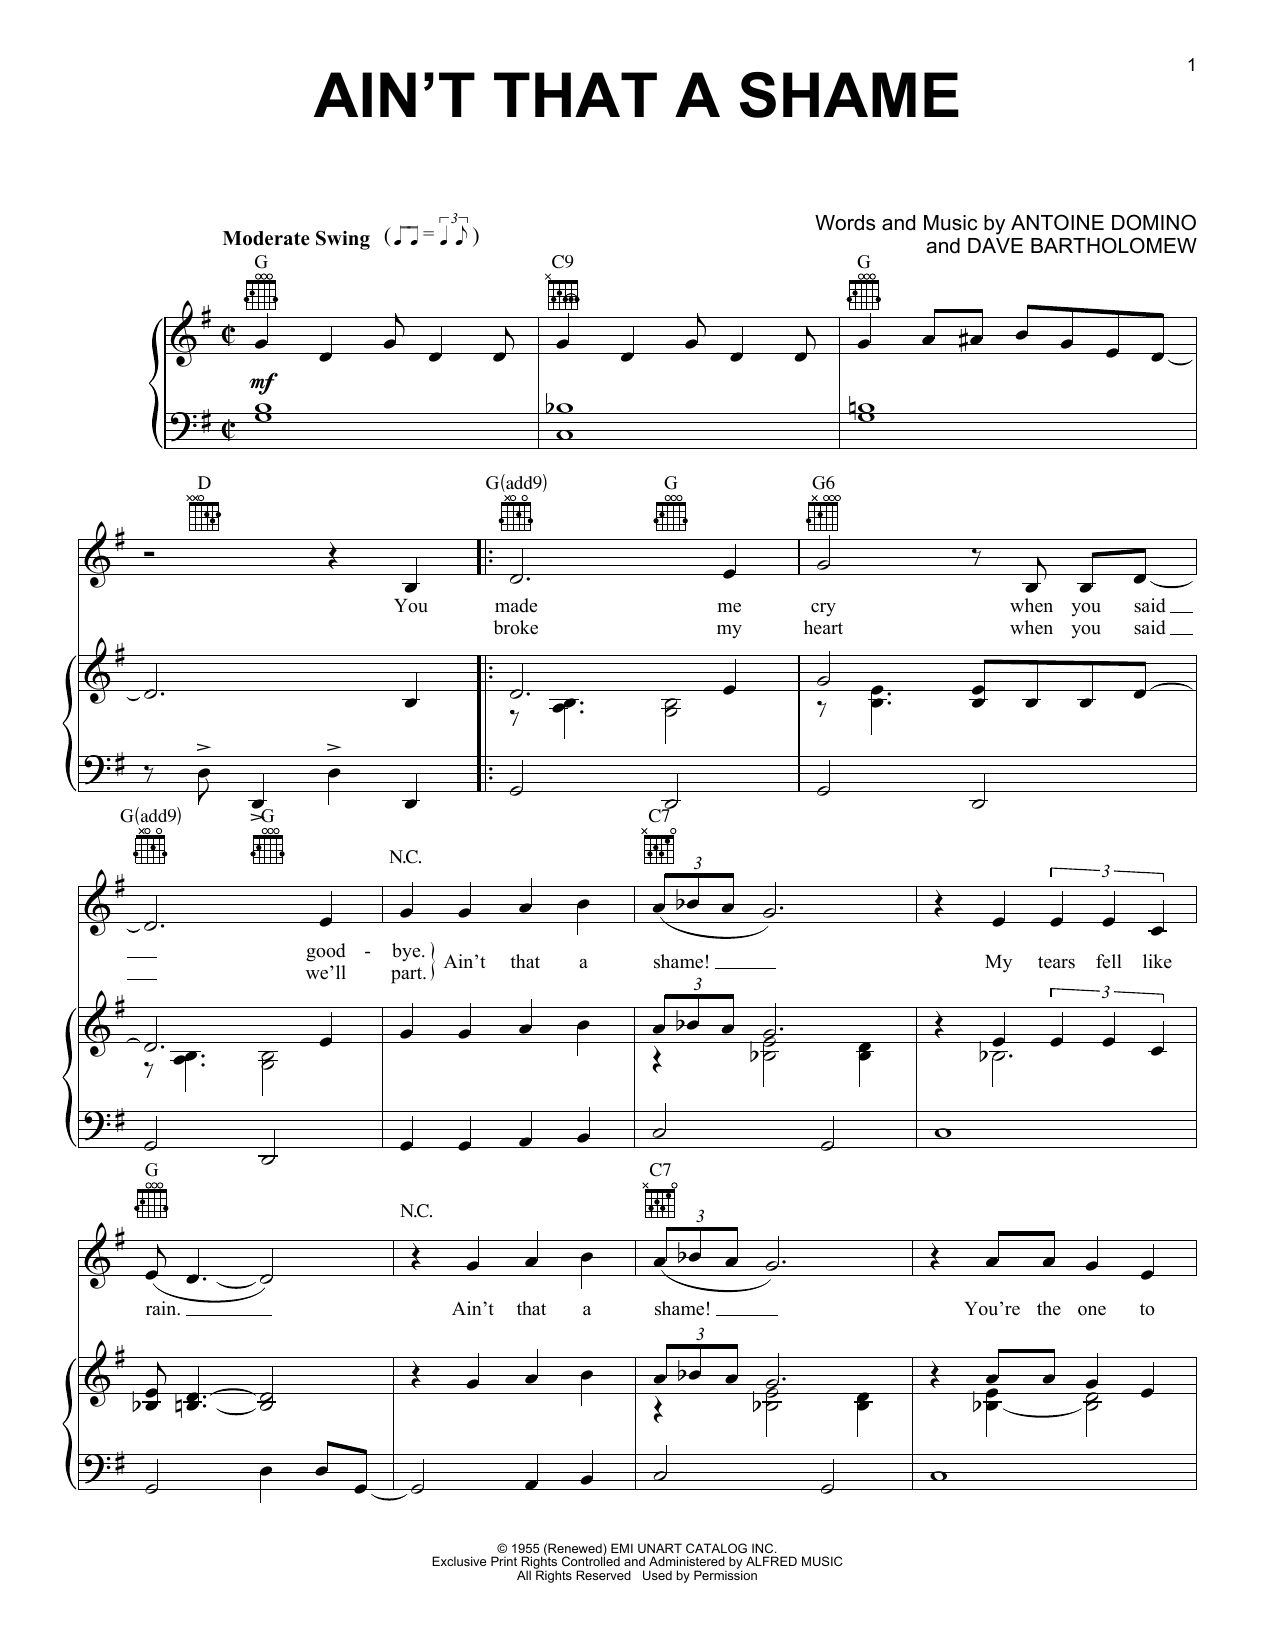 Fats Domino Ain't That A Shame sheet music notes and chords. Download Printable PDF.